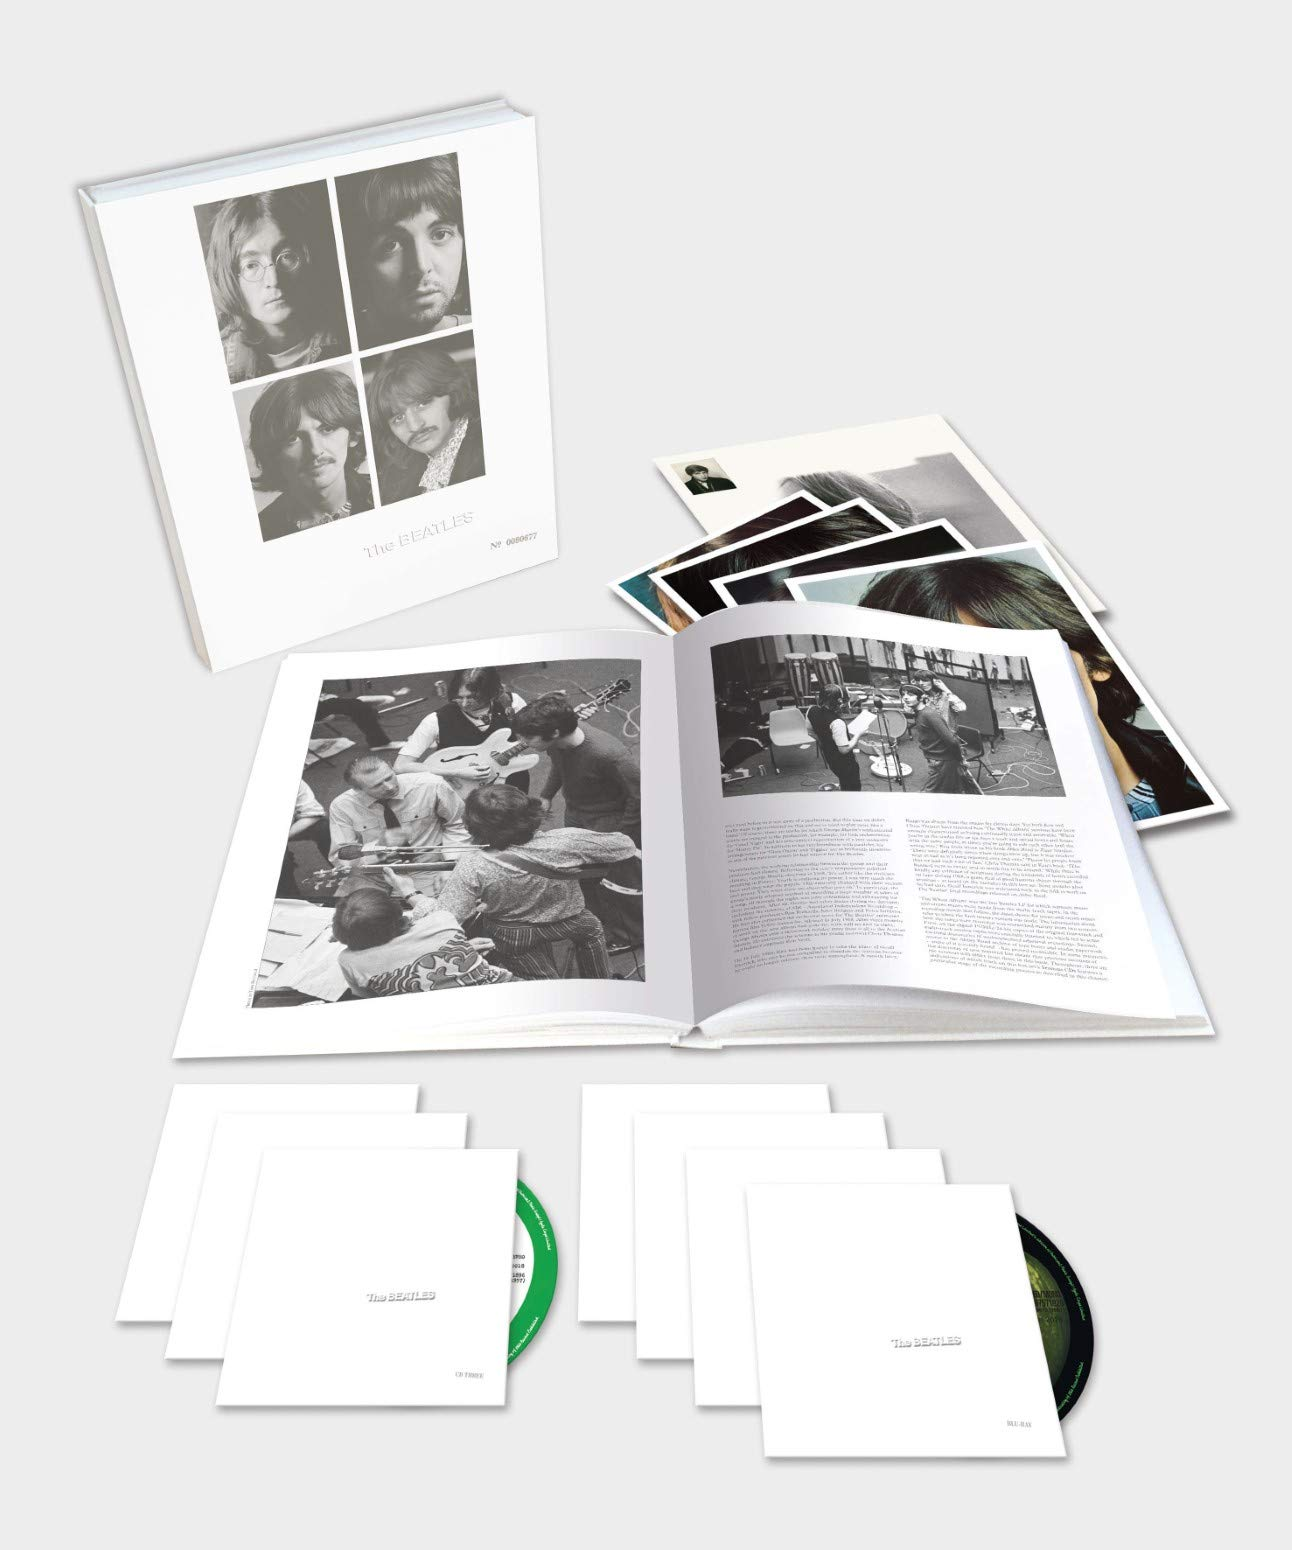 CD : The Beatles - The Beatles (the White Album) (With Blu-ray, Boxed Set)